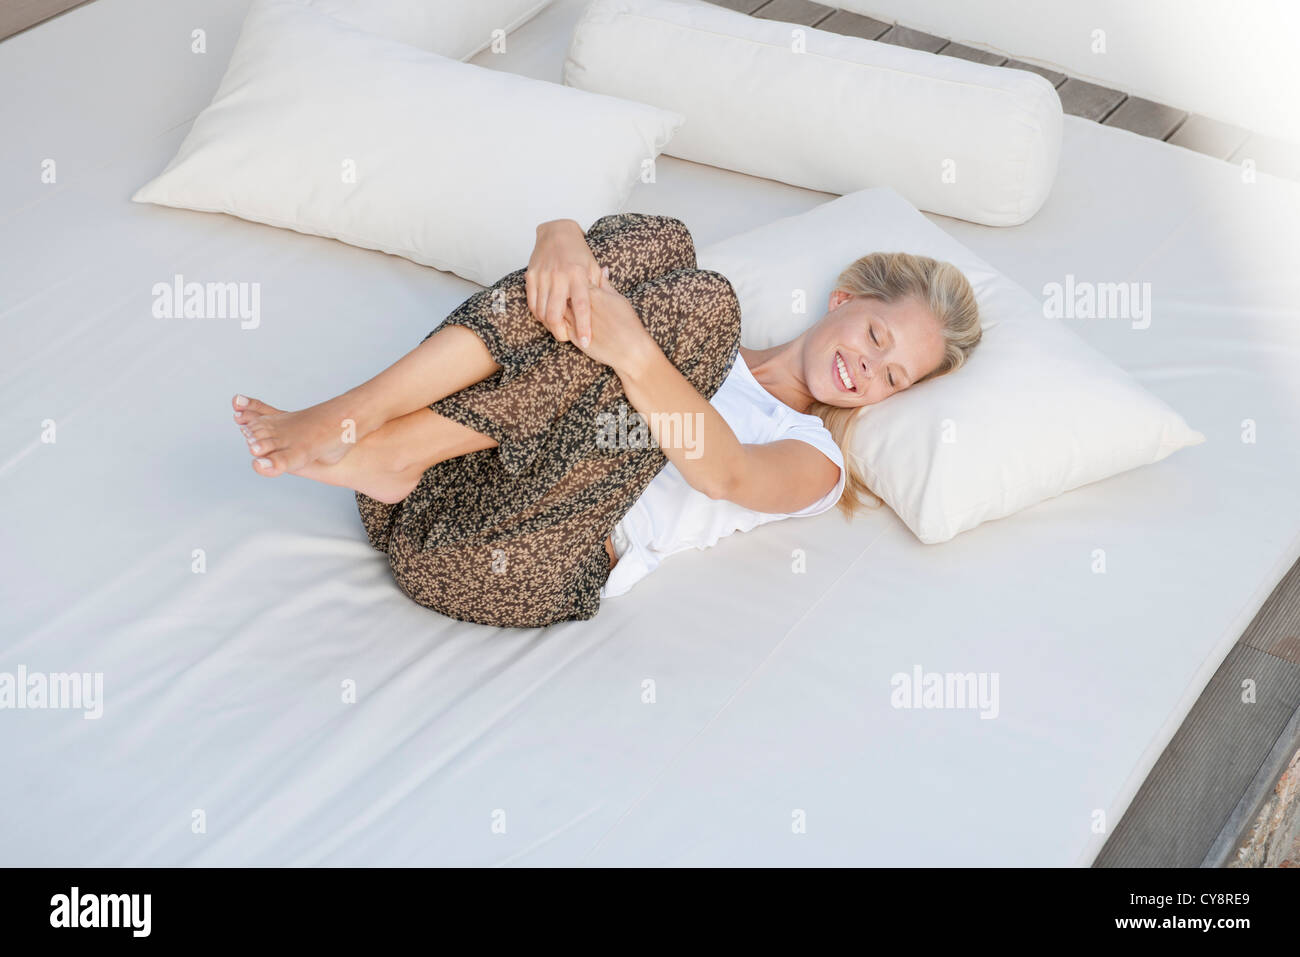 Young woman relaxing on bed in fetal position